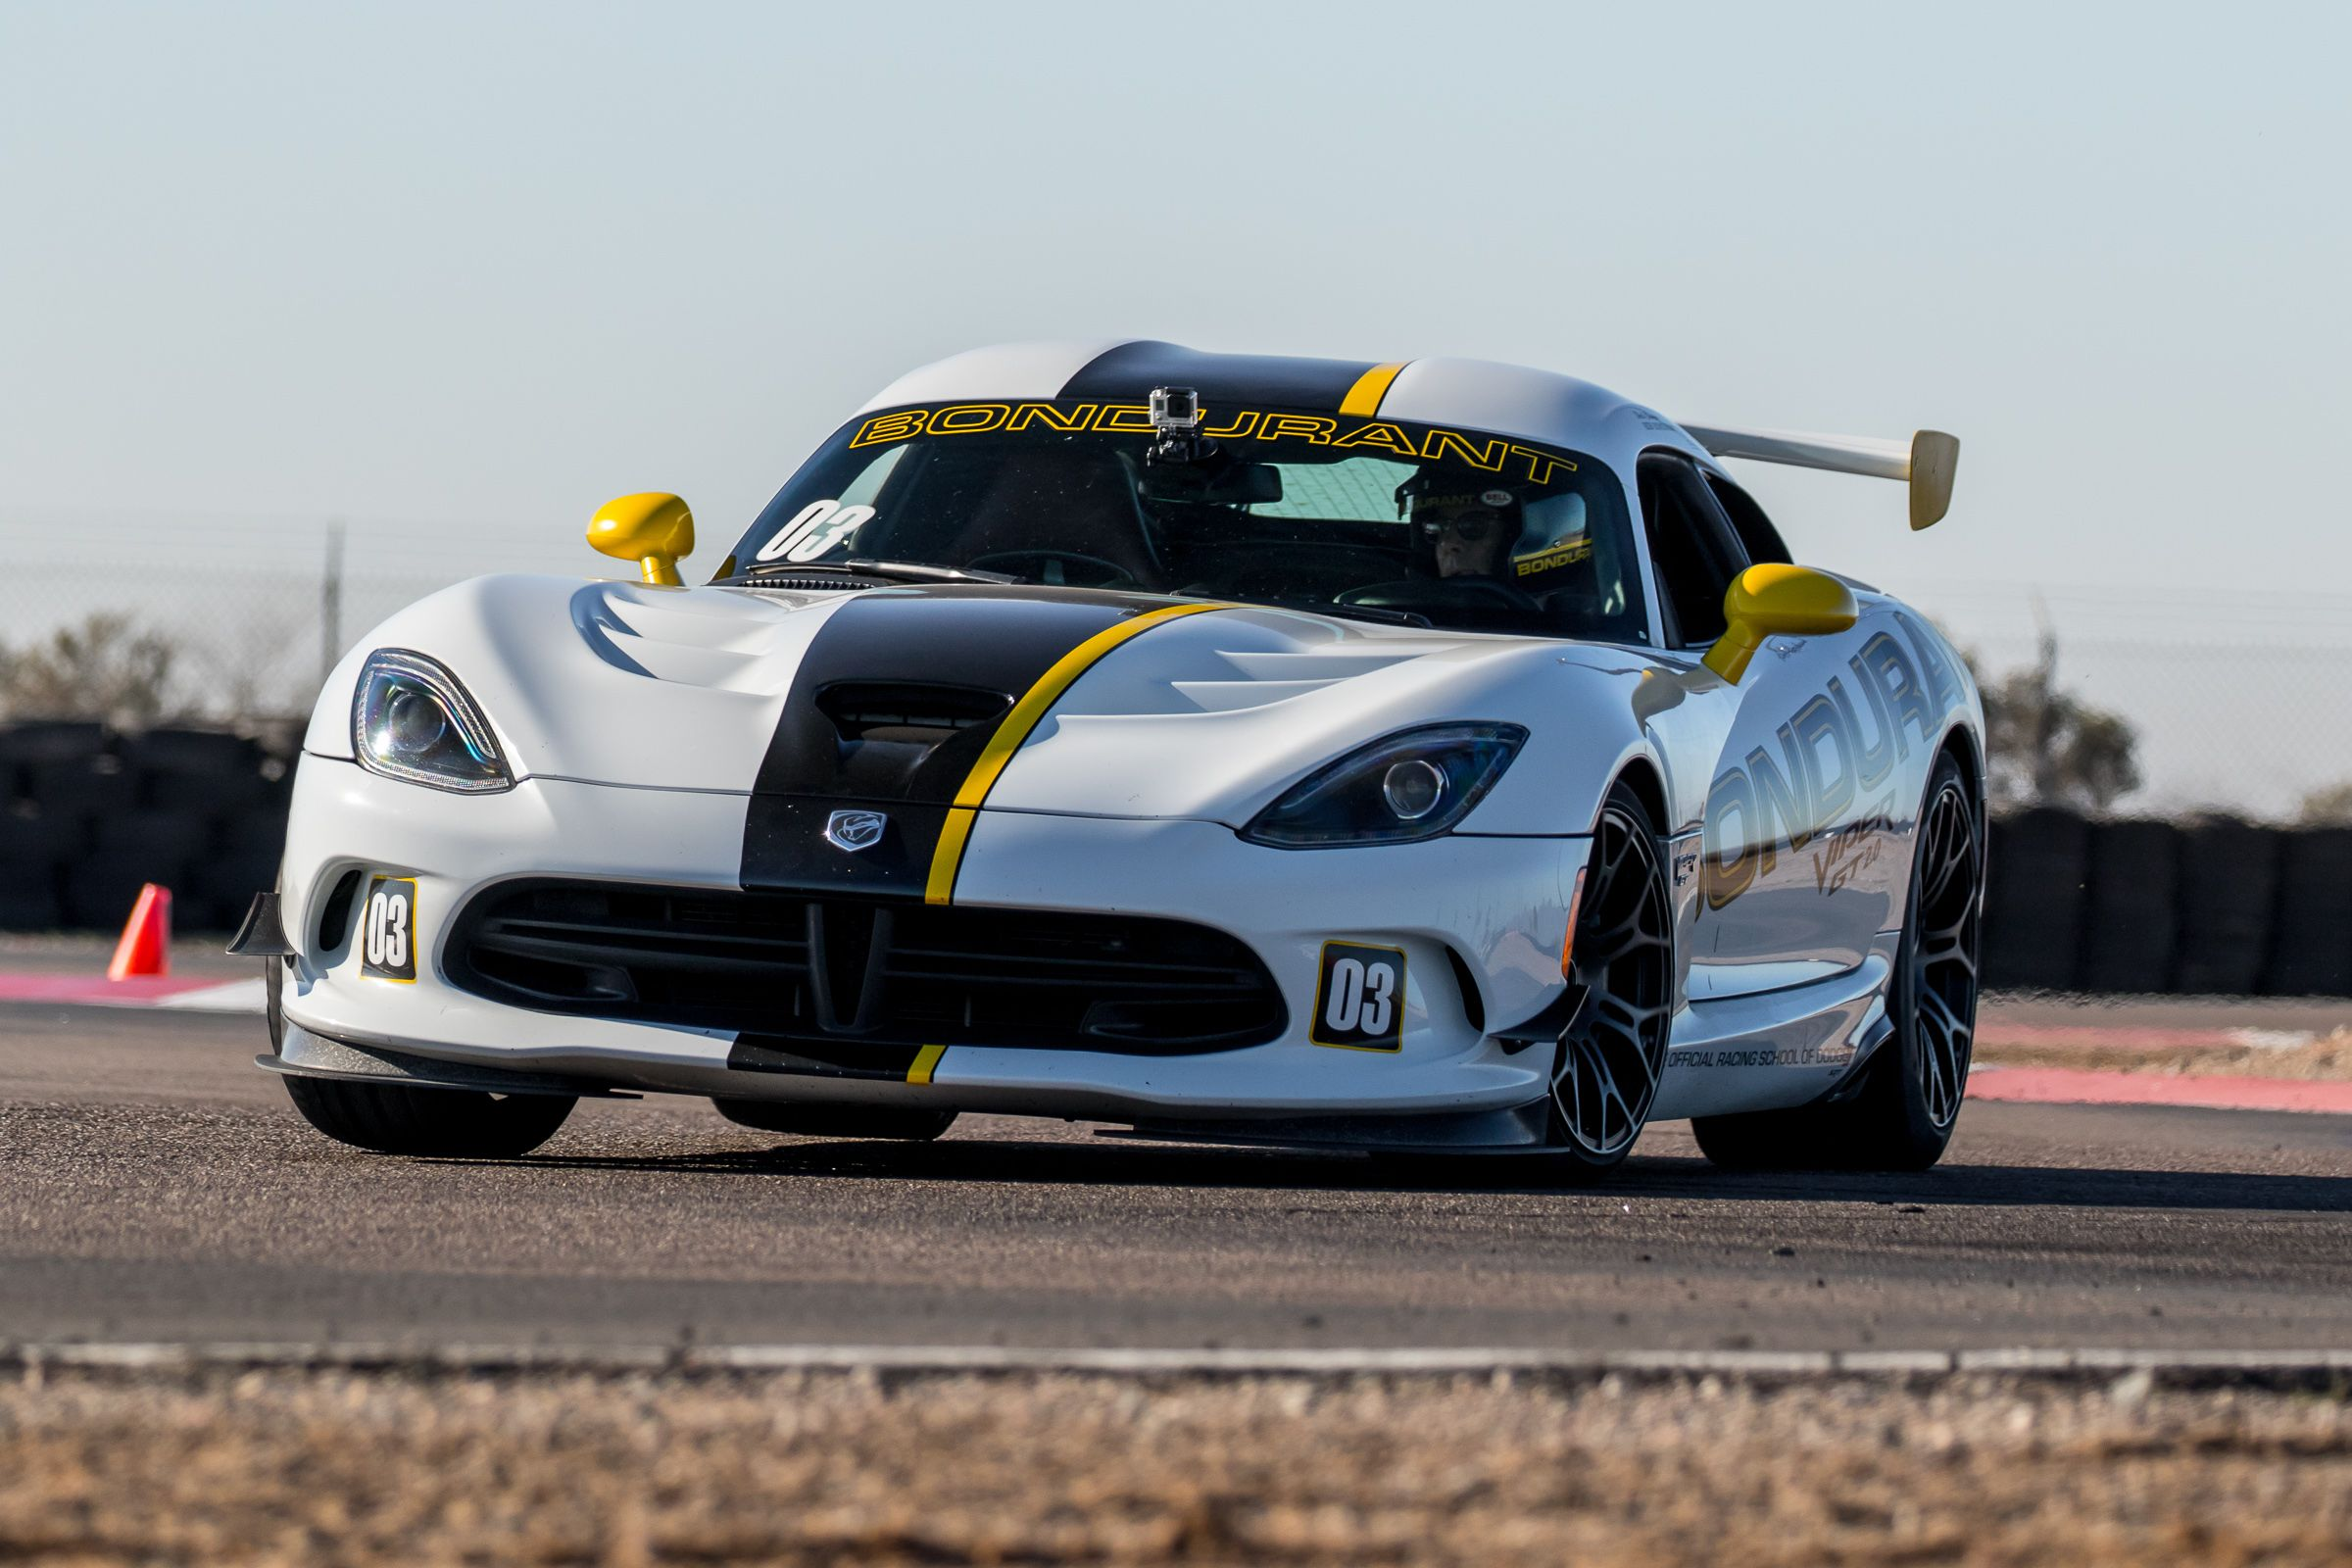 Dr Michael P Lange Cornering Hard In 2016 Dodge Viper Ta At The Bondurant Race School He Will Make His 2017 Race Debut In A Dodge Viper Mopar Muscle Viper Acr